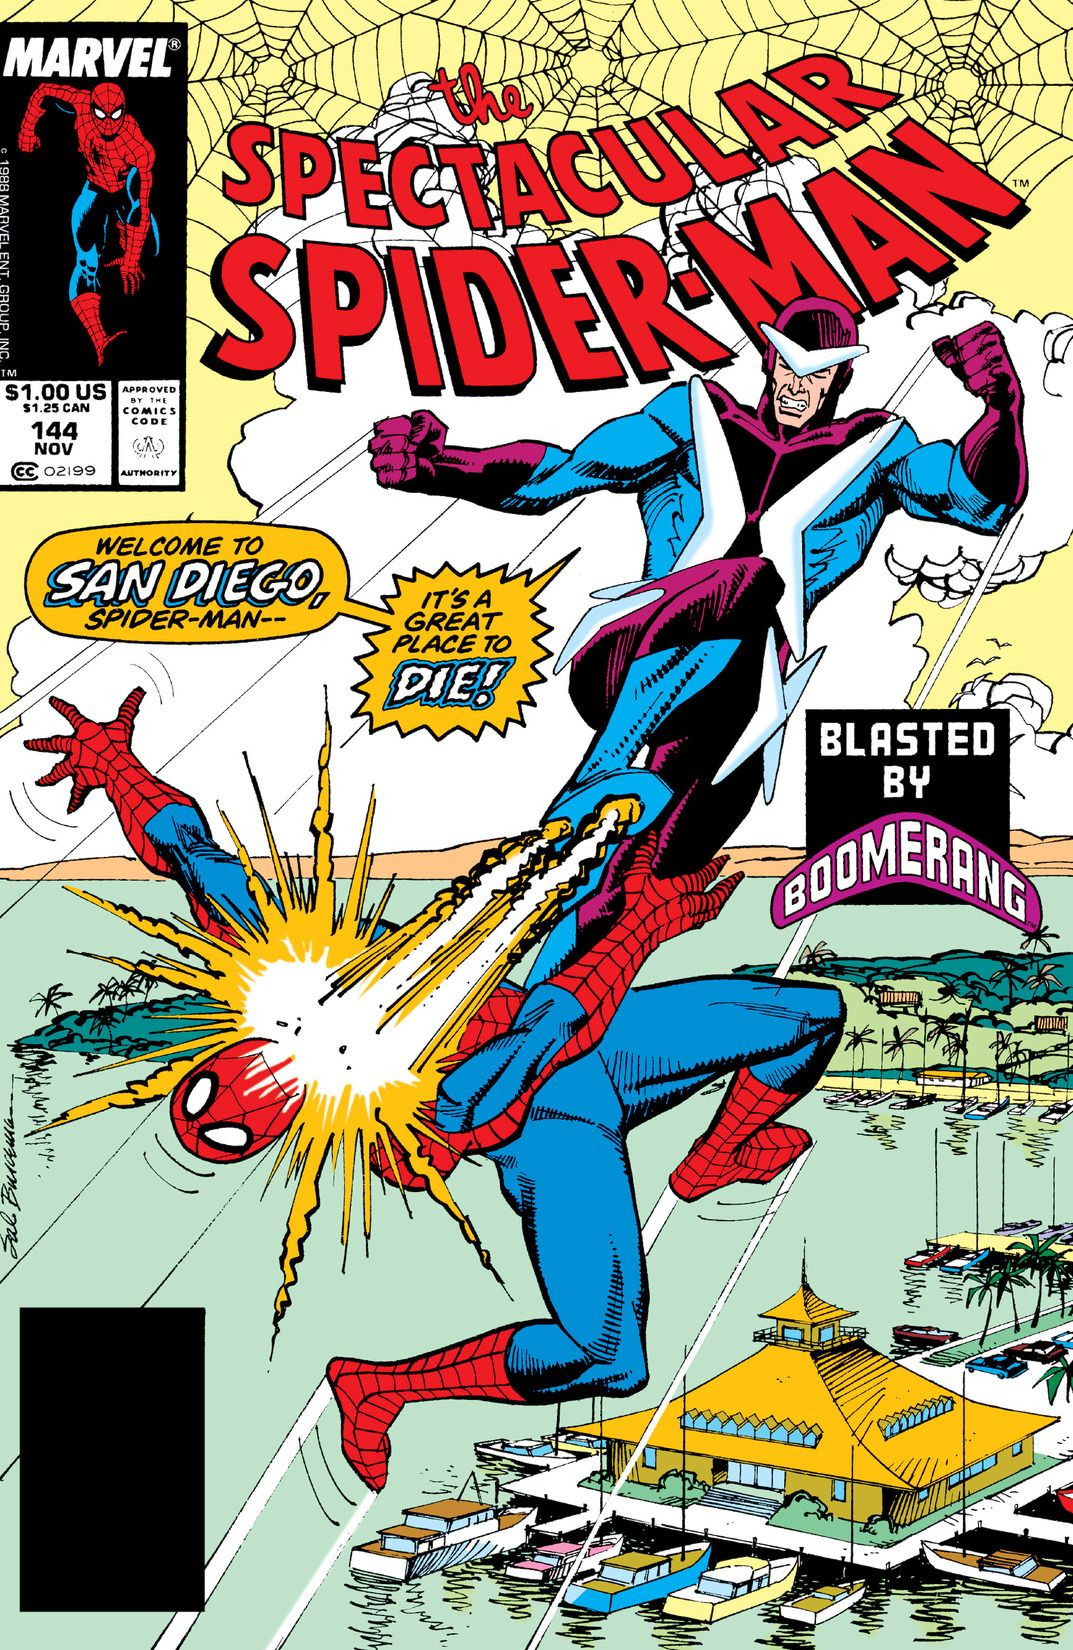 Spectacular Spider-Man Vol 1 144